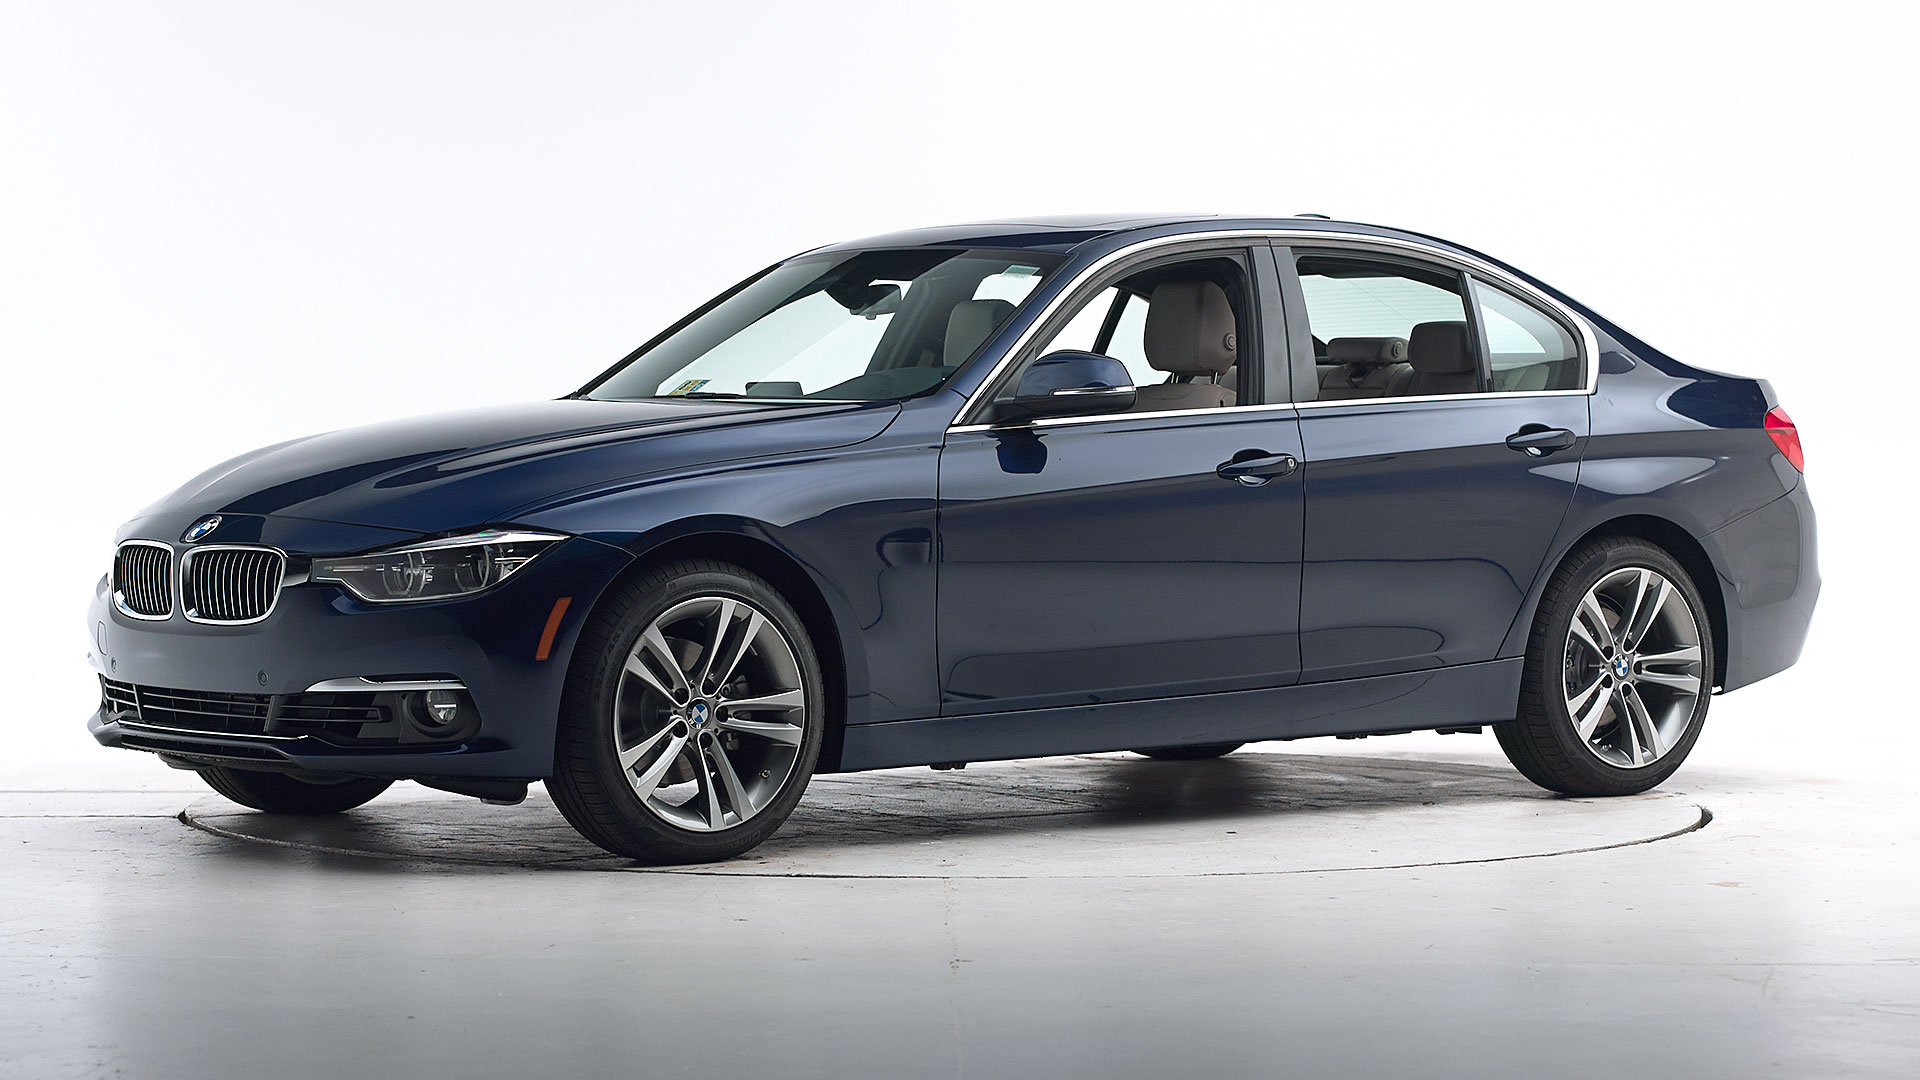 2016 BMW 3 series 4-door sedan